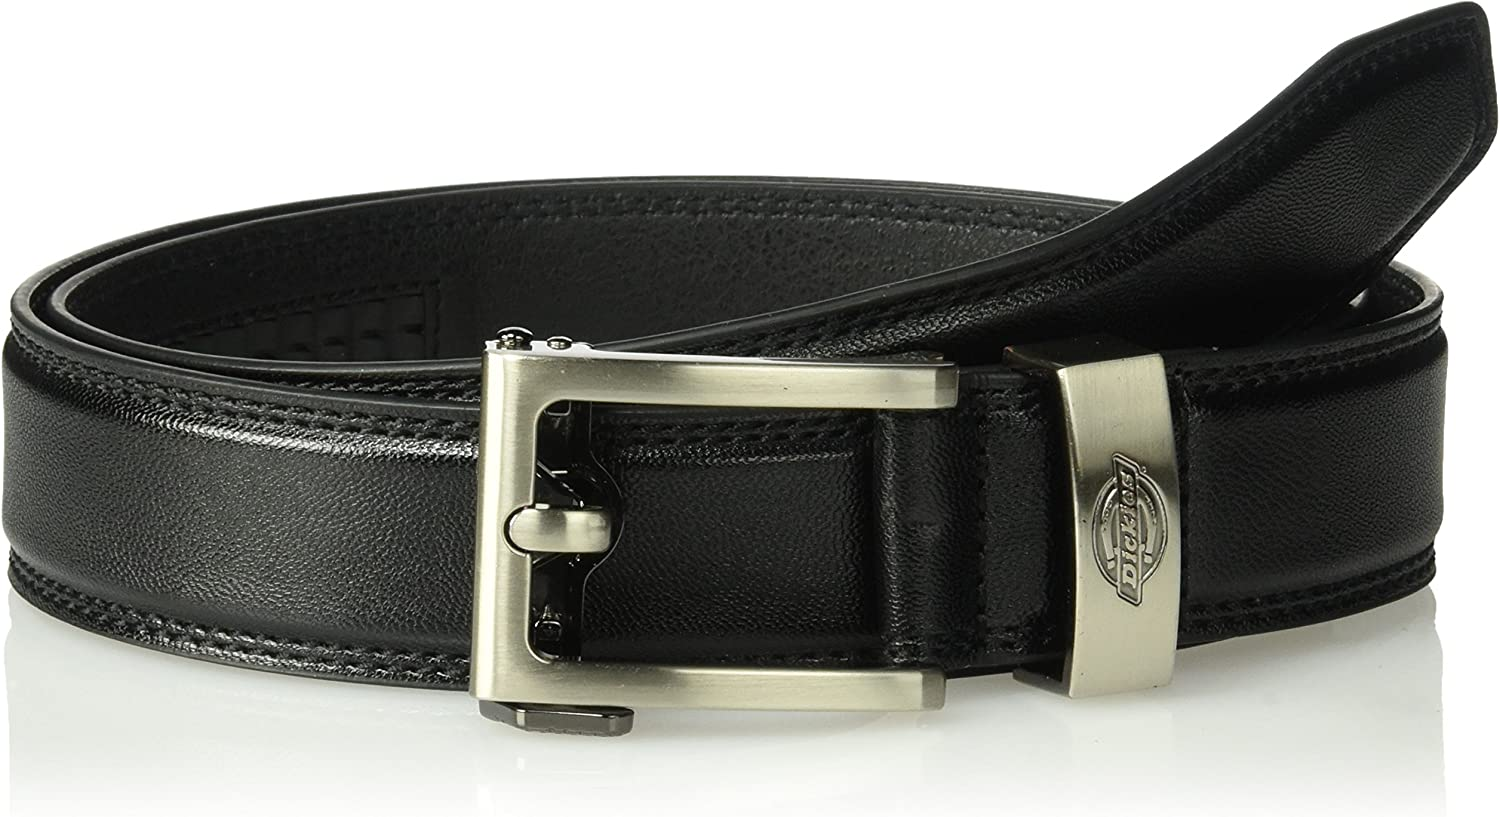 MENS WOMEN TACTICAL CANVAS BELT DURABLE DOUBLE HOLE One-size Fits All ADJ BUCKLE